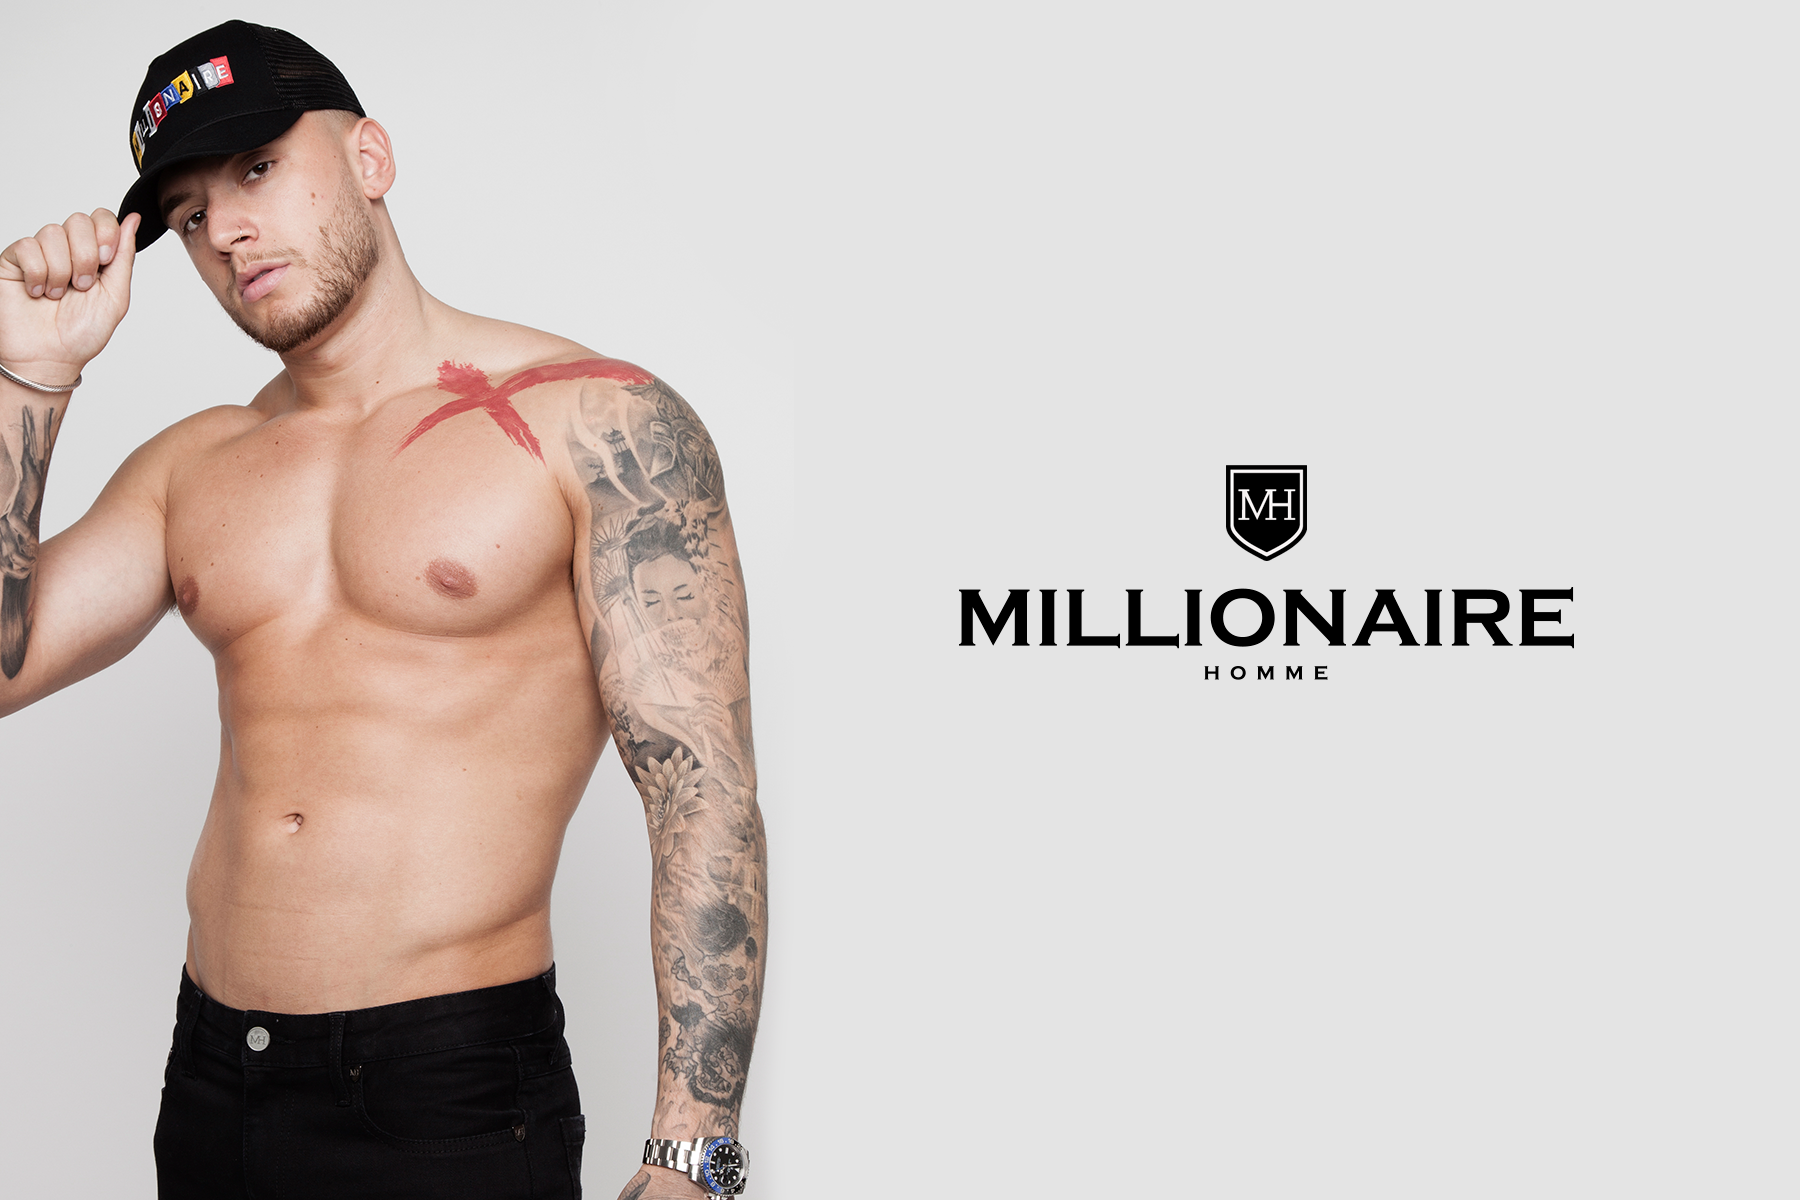 https://www.p360agency.co.uk/project/millionaire-homme/